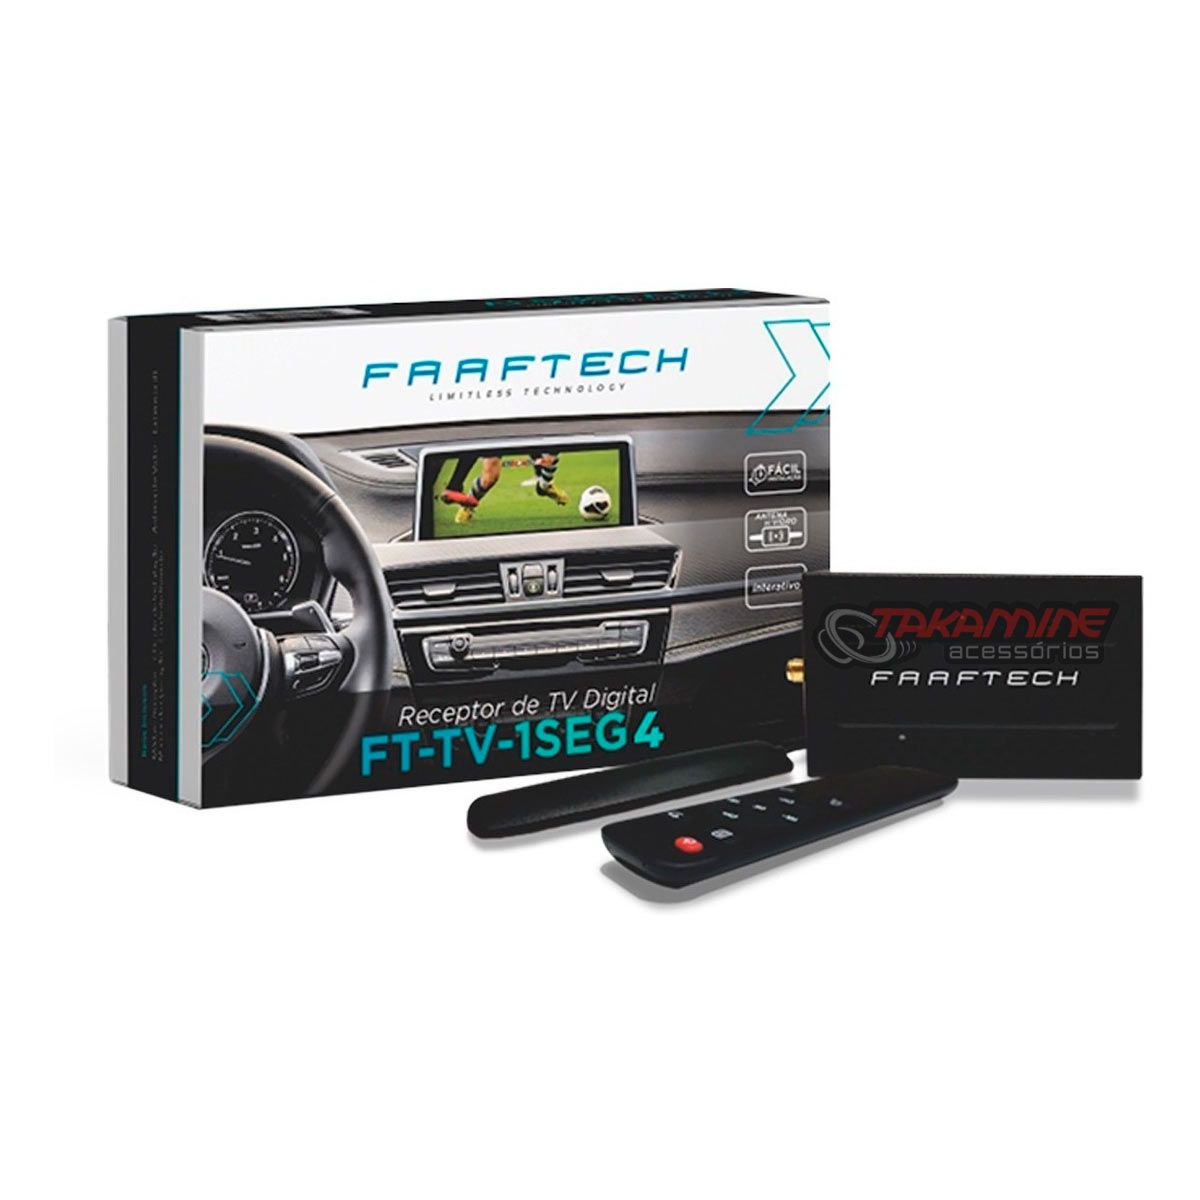 Receptor de TV Digital Faaftech 1 Seg FT-TV-1SEG4